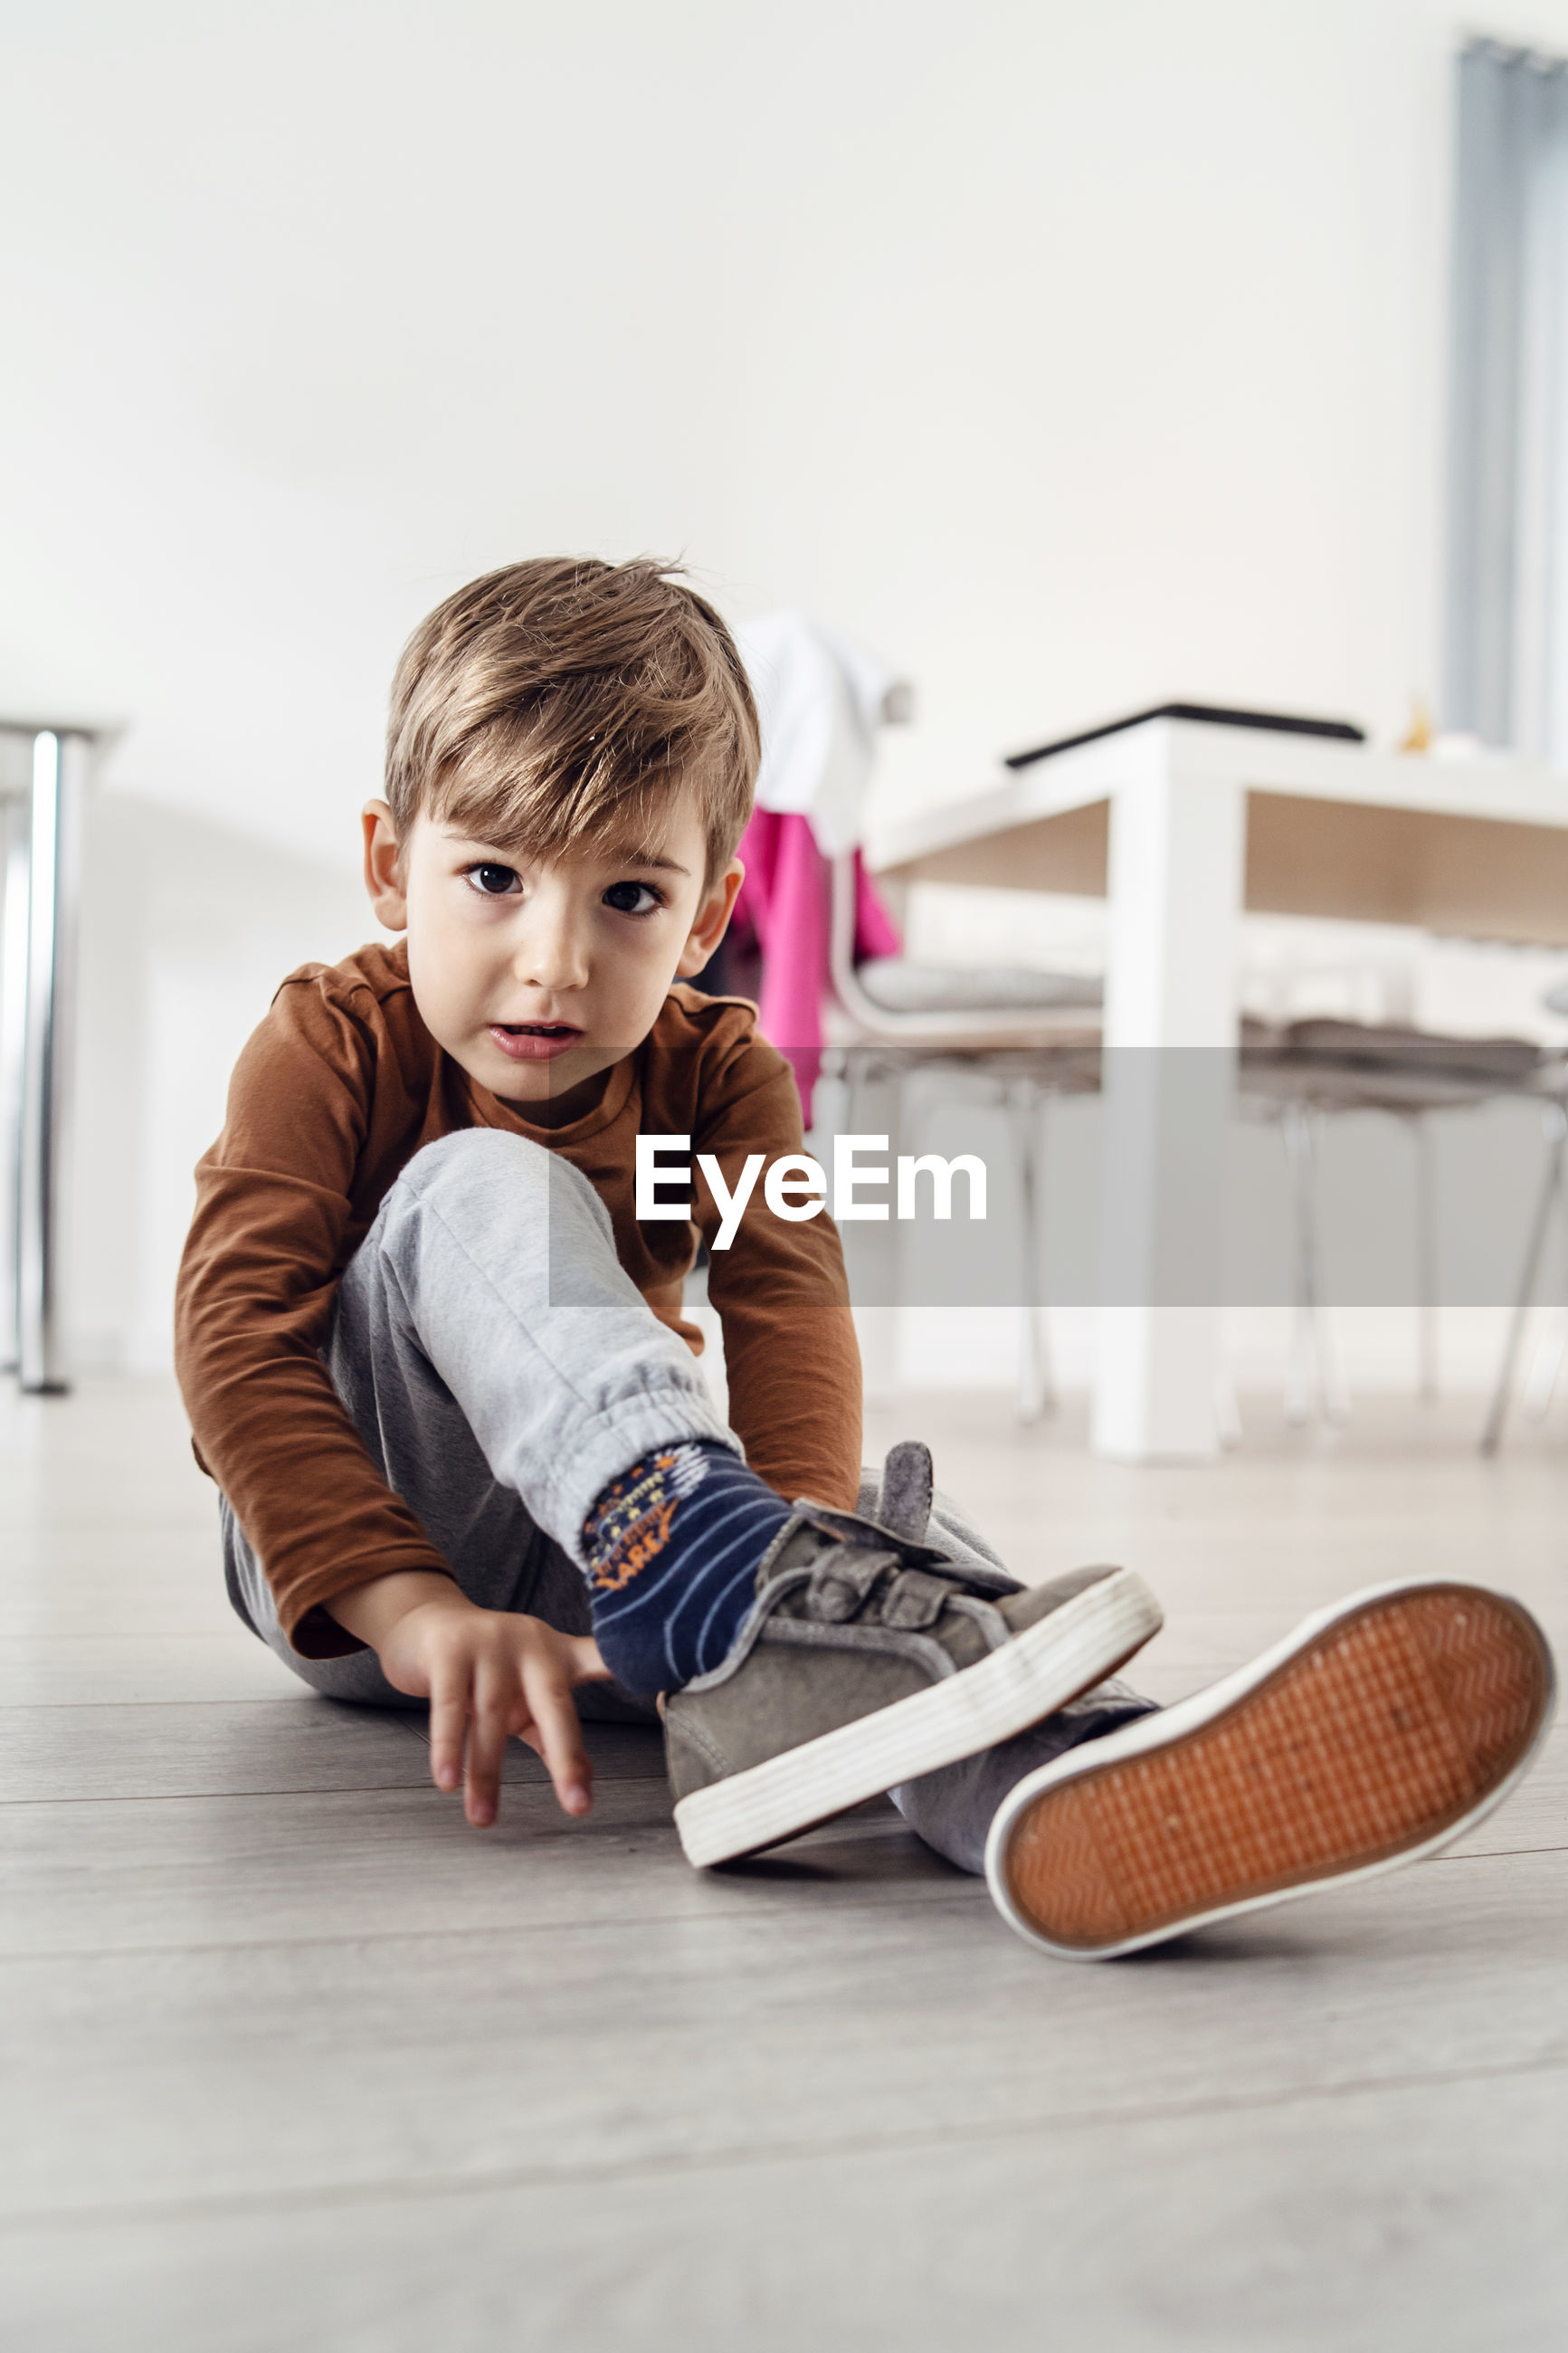 Portrait of cute boy wearing shoes while sitting on floor at home